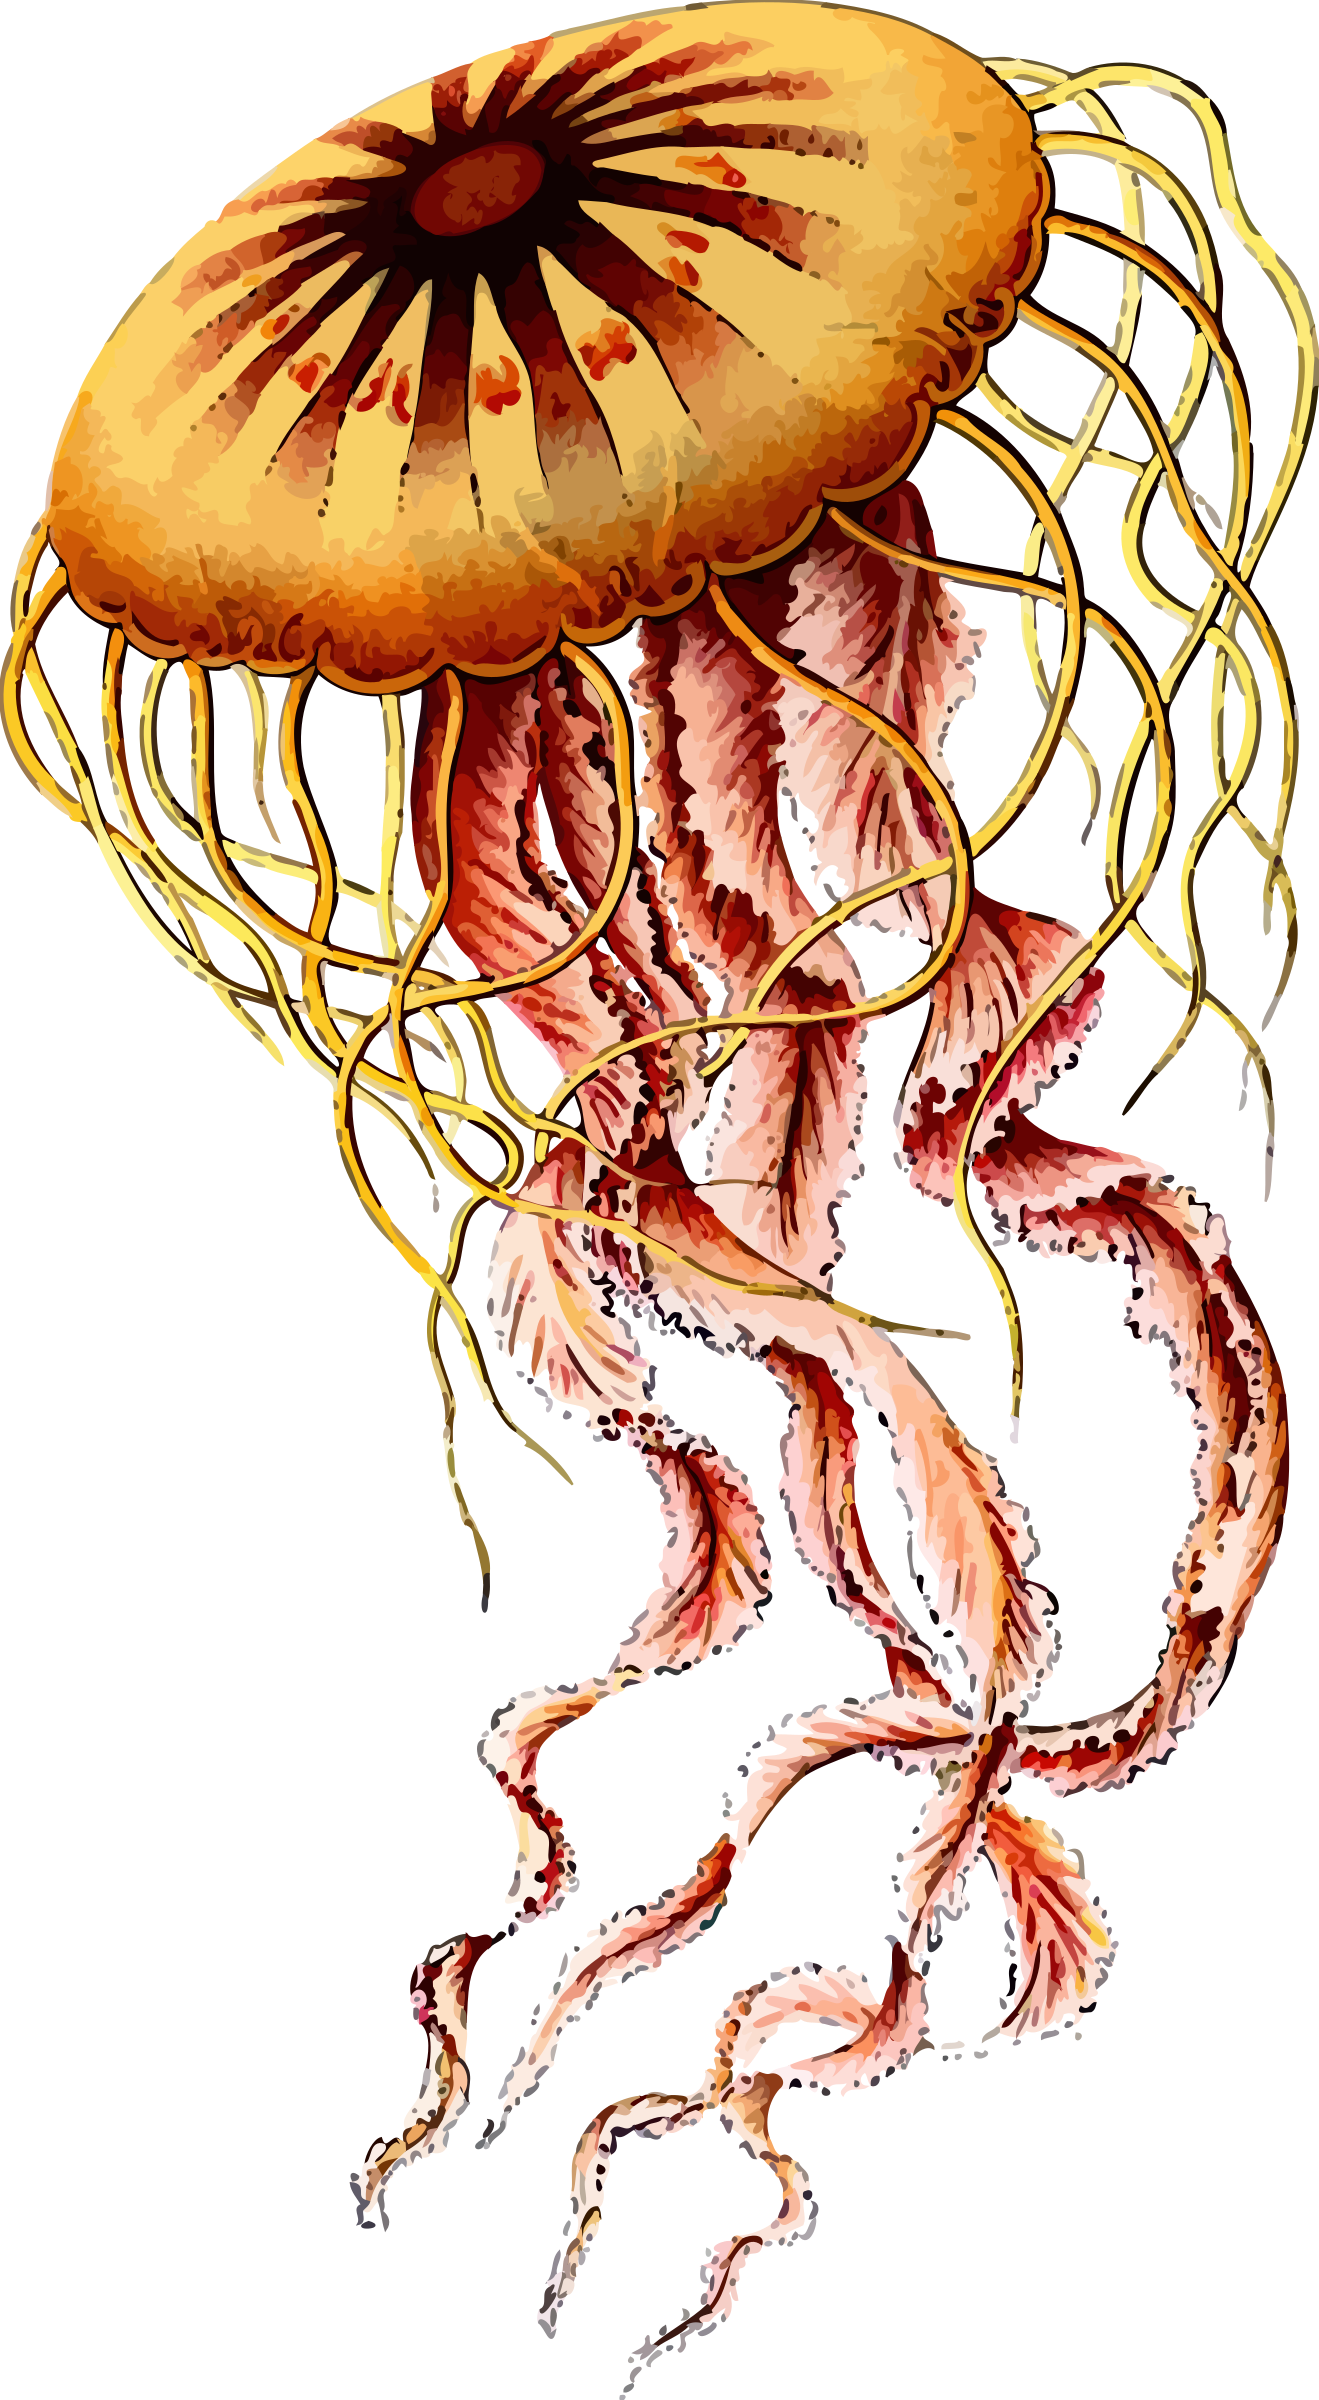 Jellyfish by Firkin